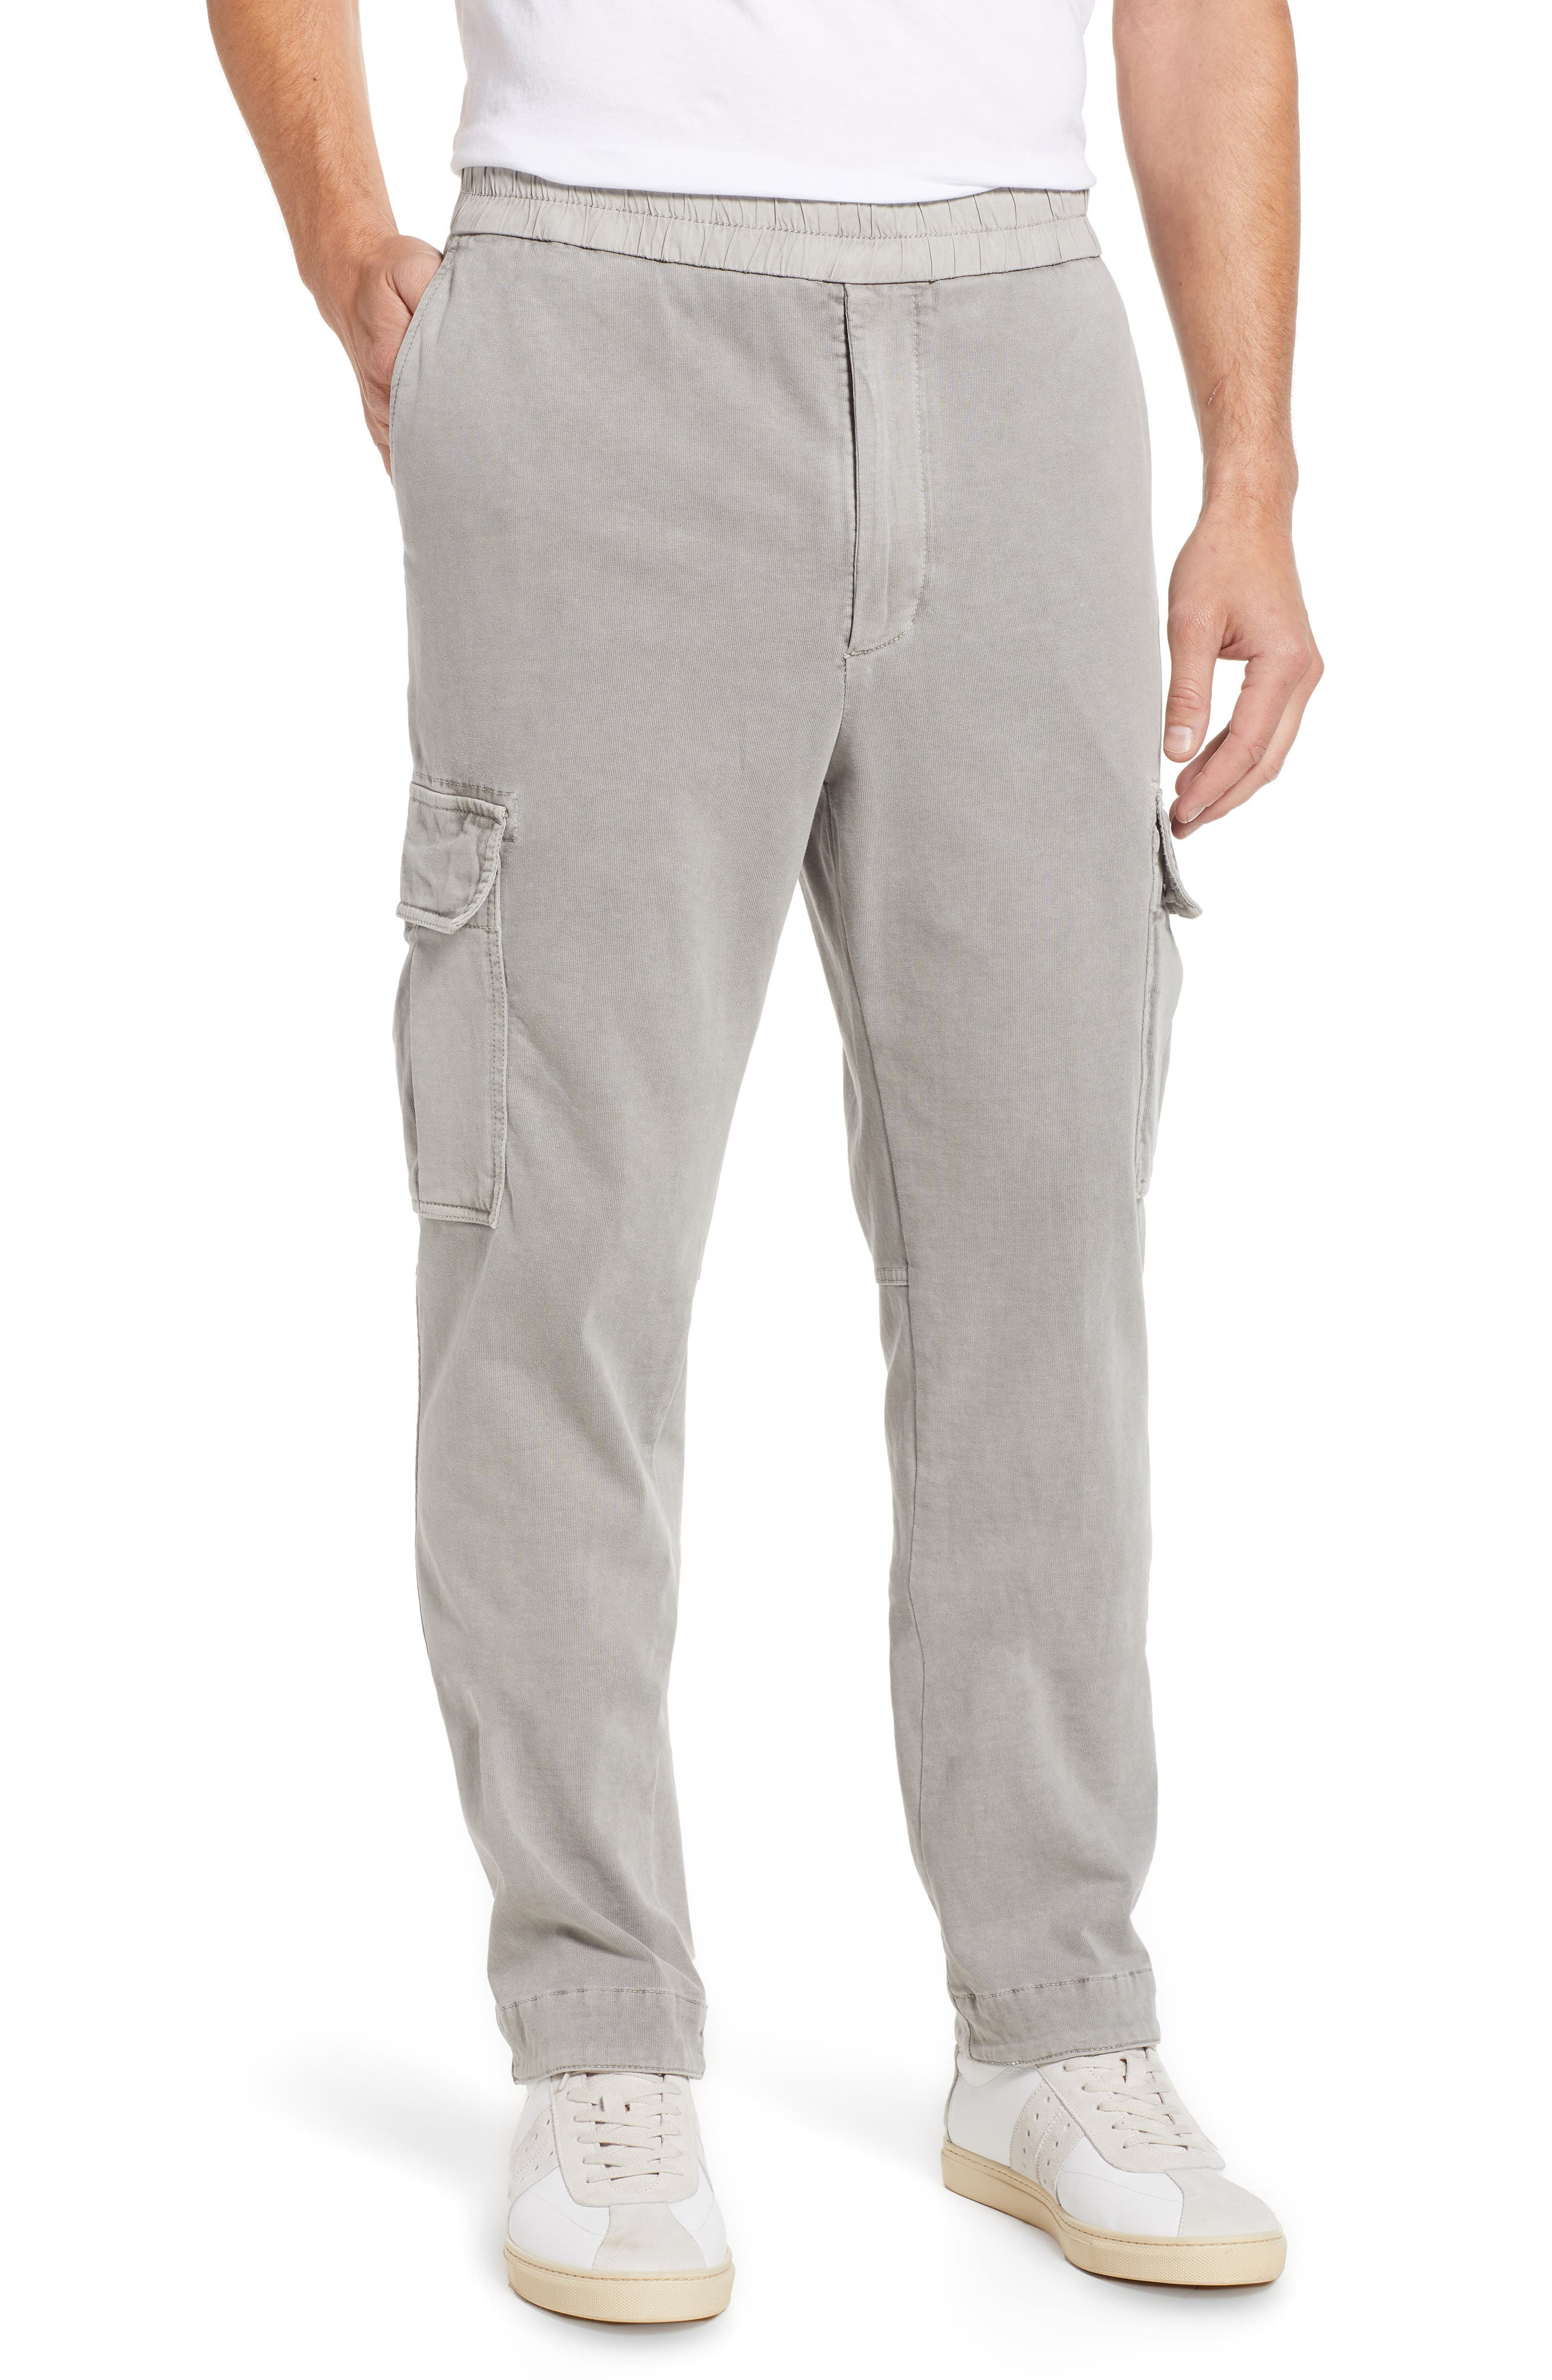 Cotton Jersey Relaxed Fit Cargo Pants,                         Main,                         color, Paver Pigment